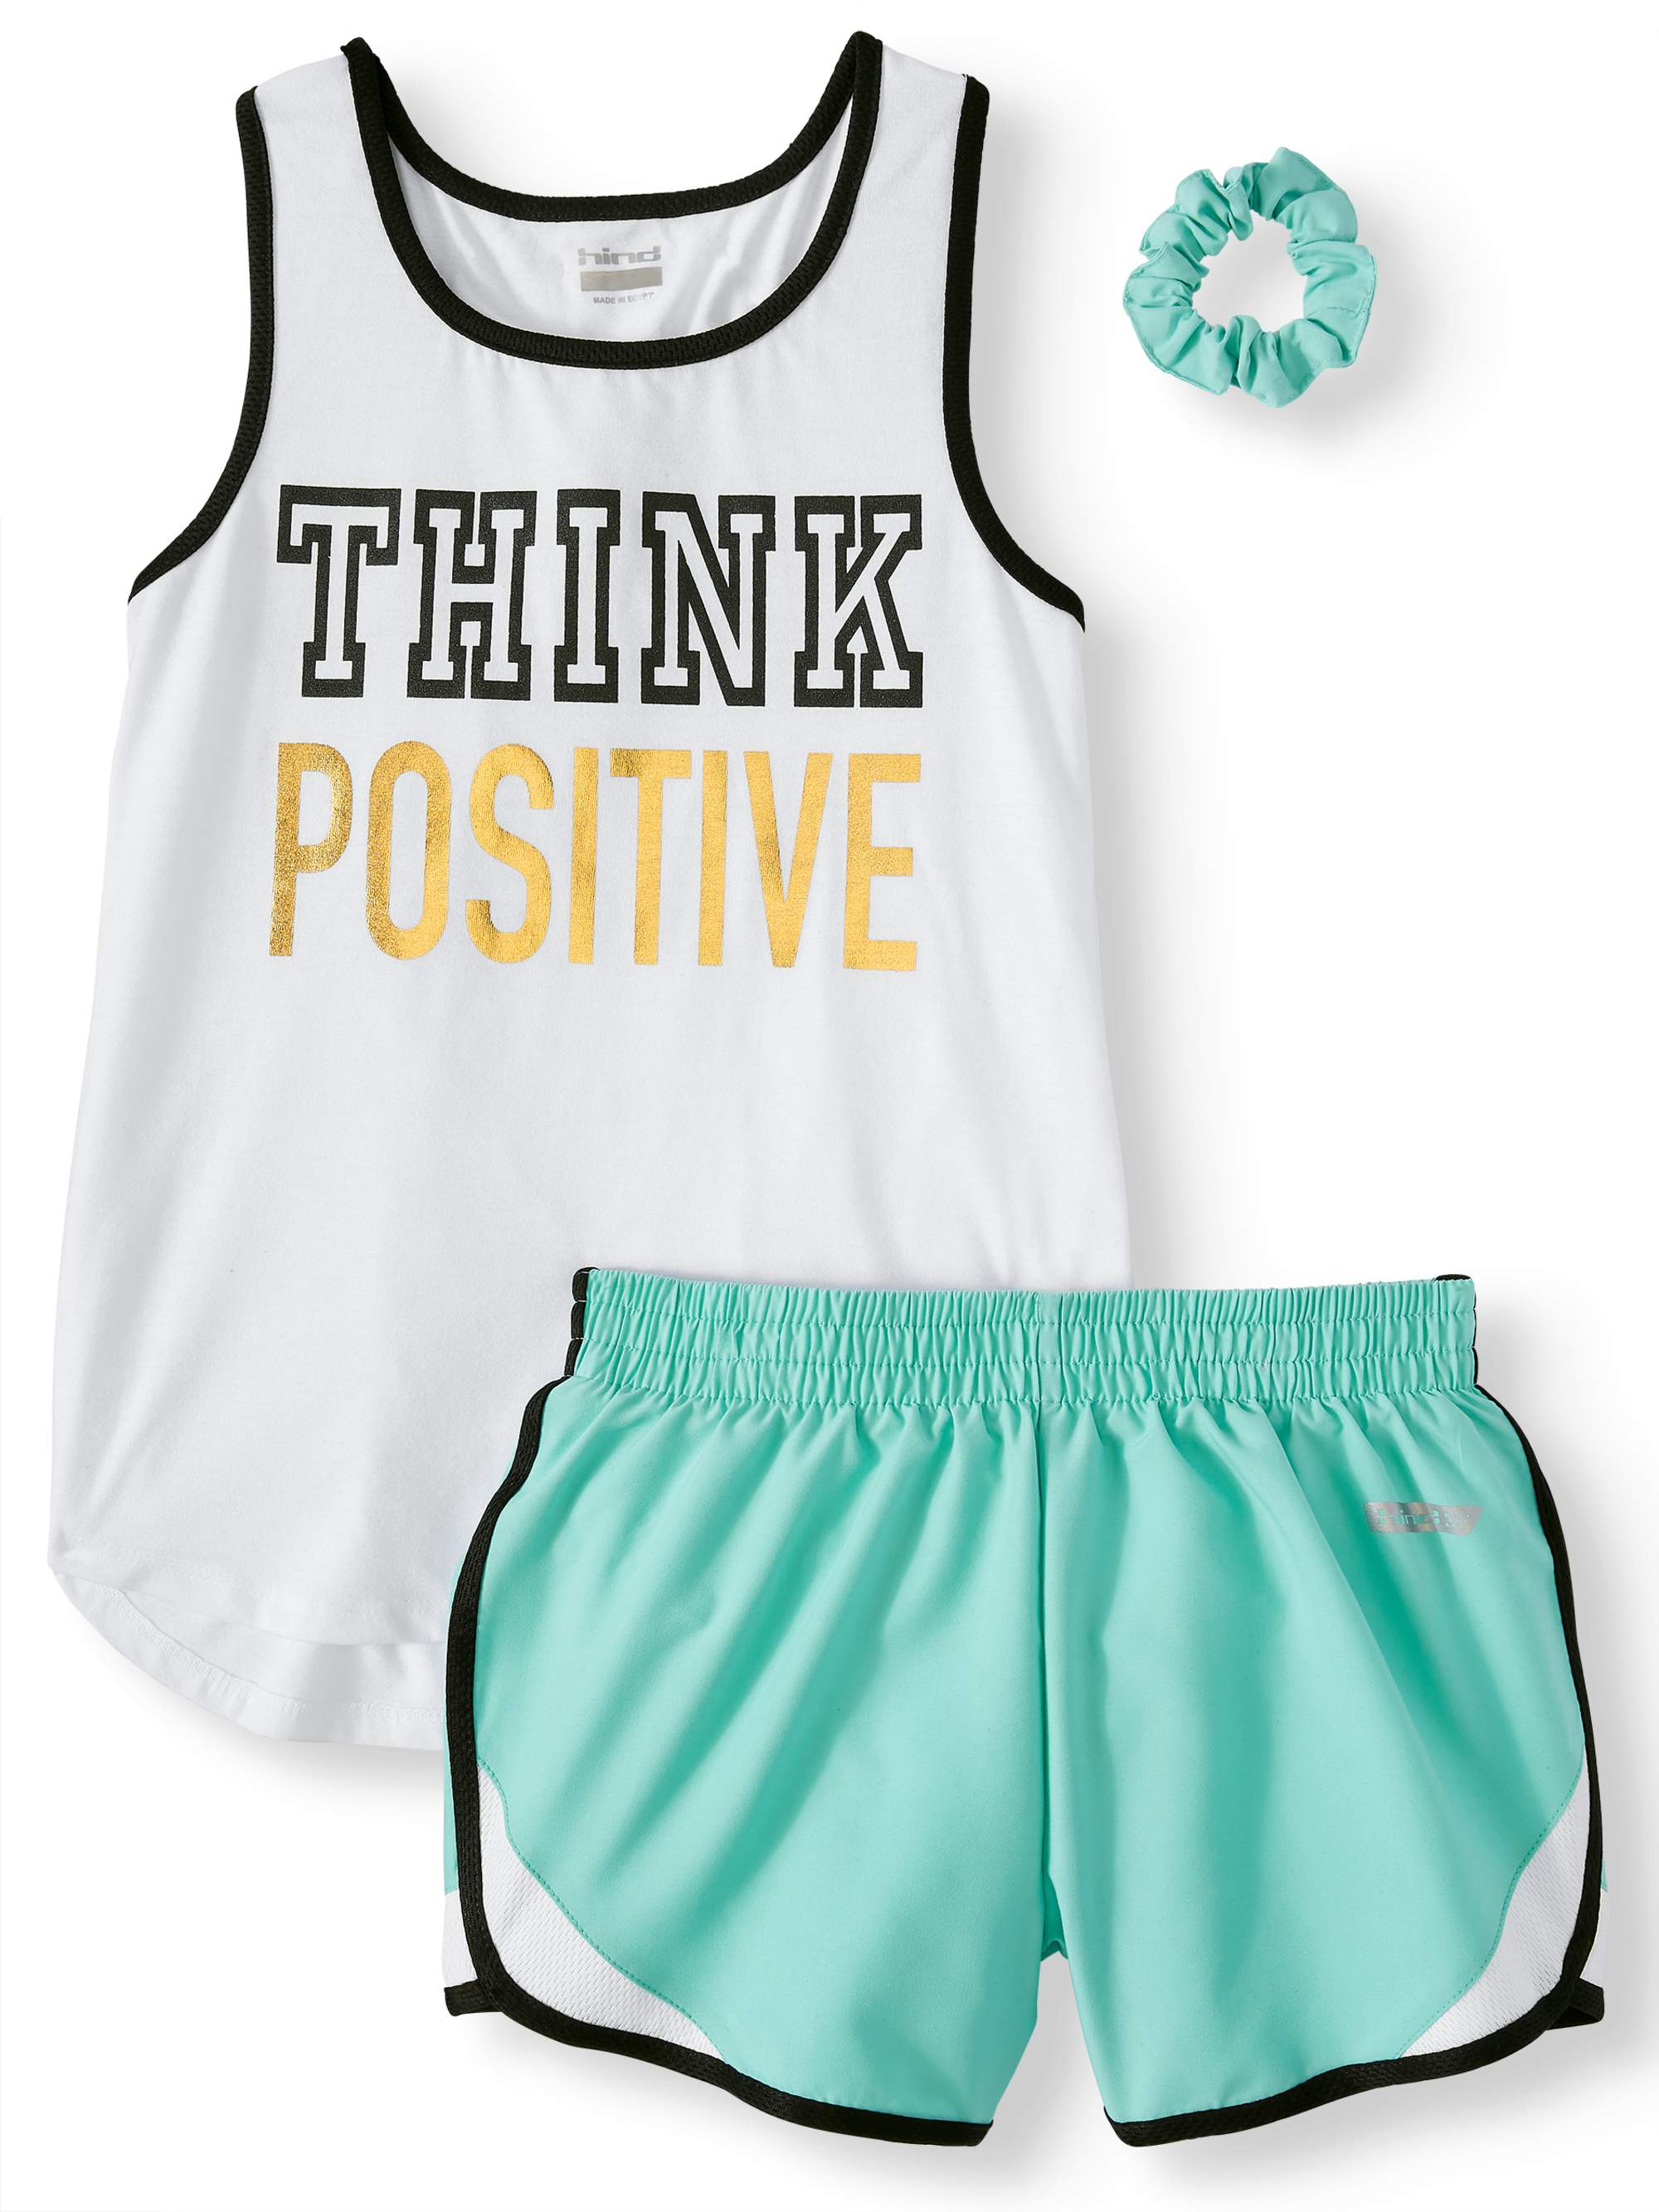 Racerback Graphic Tank and Short, 2-Piece Active Set (Little Girls & Big Girls)